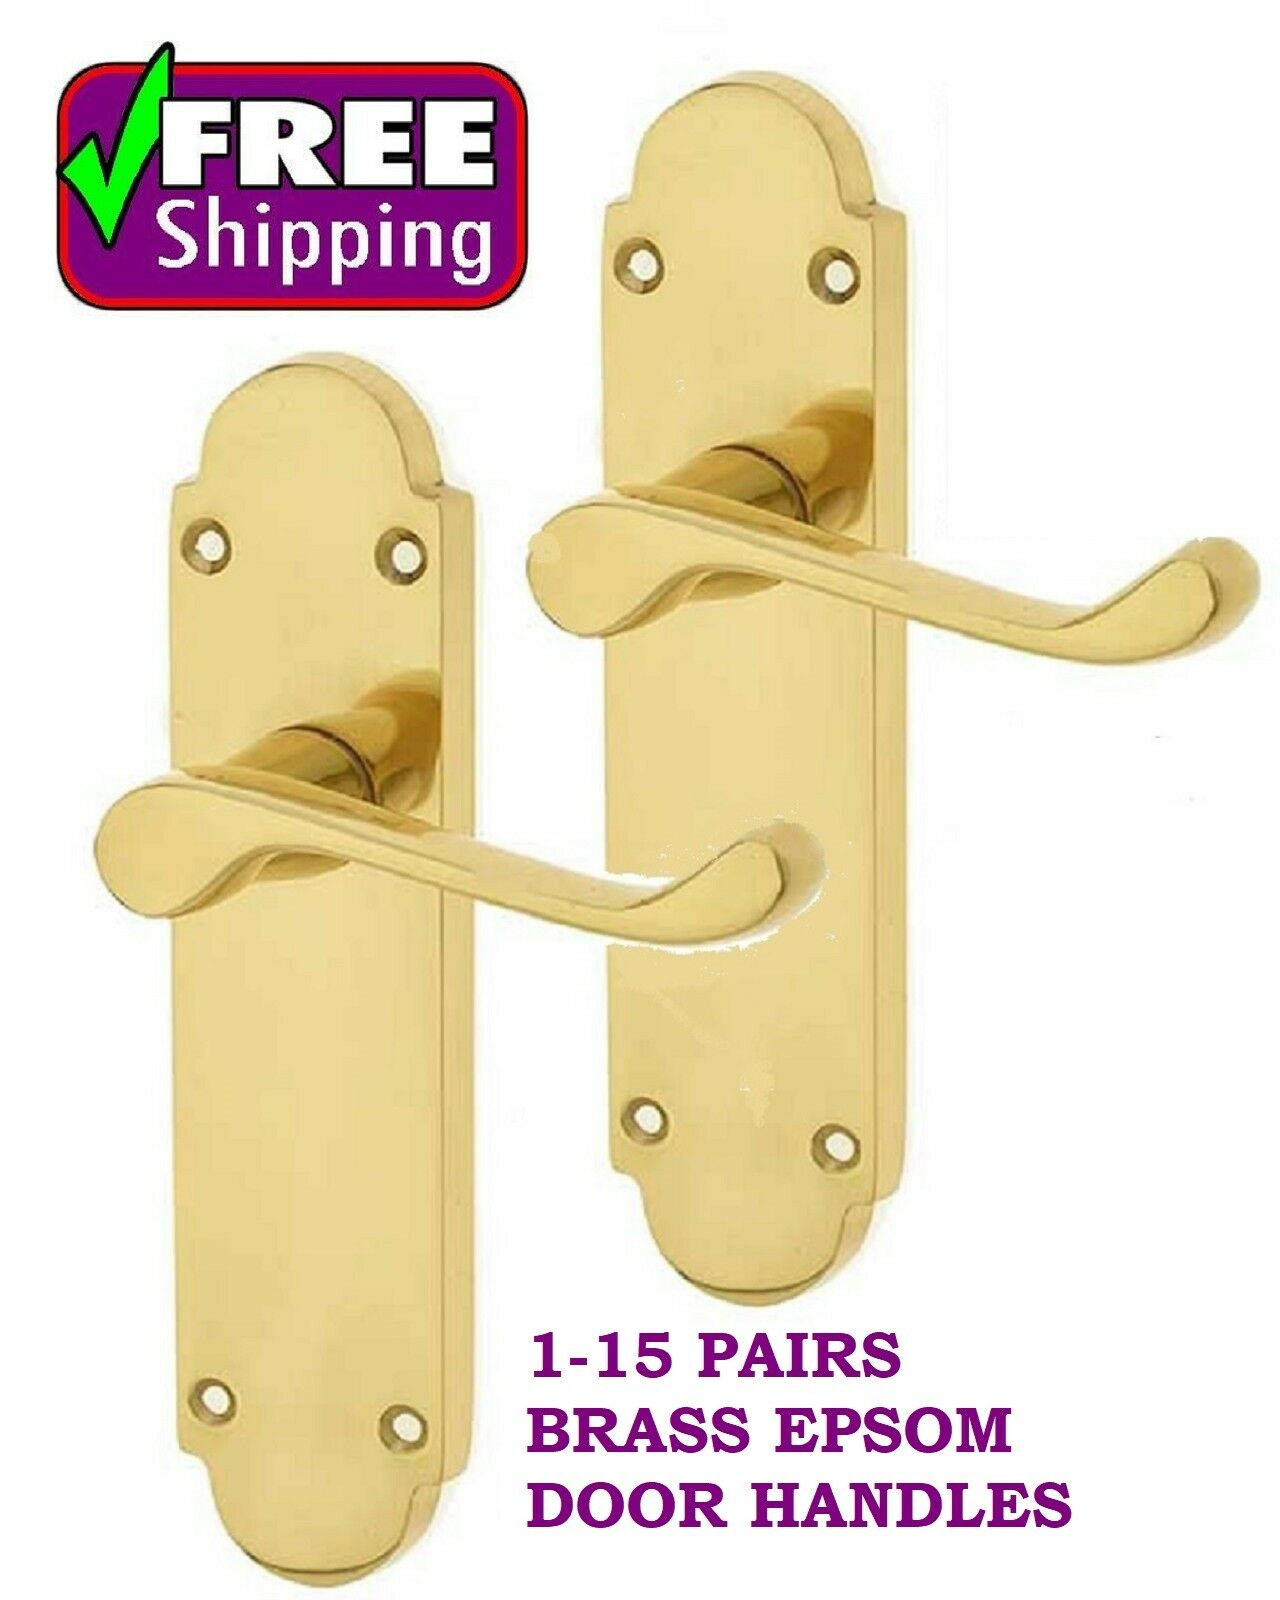 1-15 Pairs EPSOM Brass Interior Latch Door Handles 168 x 42mm FREE DELIVERY